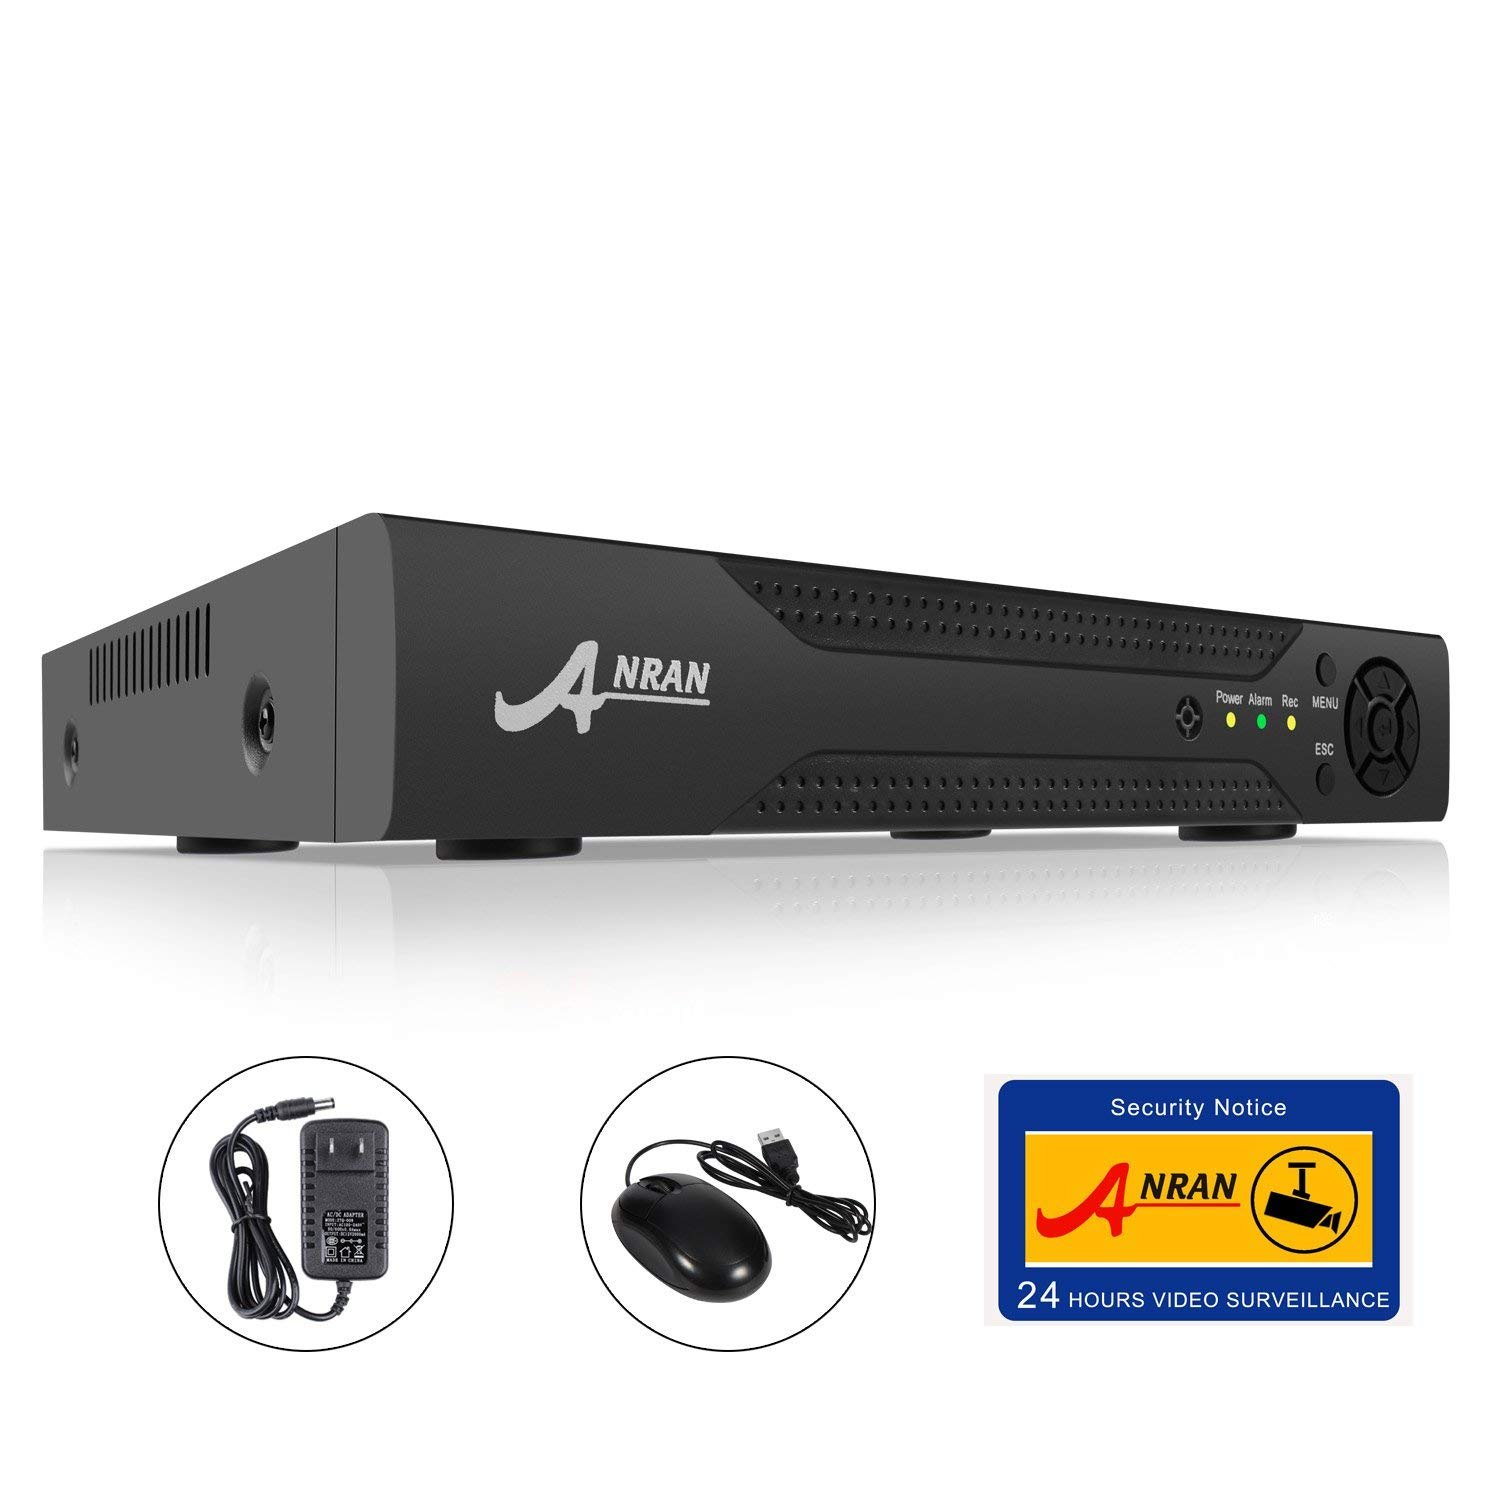 ANRAN 8CH HD H.264 Home Security Surveillance Camera System 8 Channels Hybrid 5-in-1 DVR 1080P NVR 1080N AHD 960H Analog CVI TVI Digital Video Recorder Quick QR Code Scan and Easy Remote View